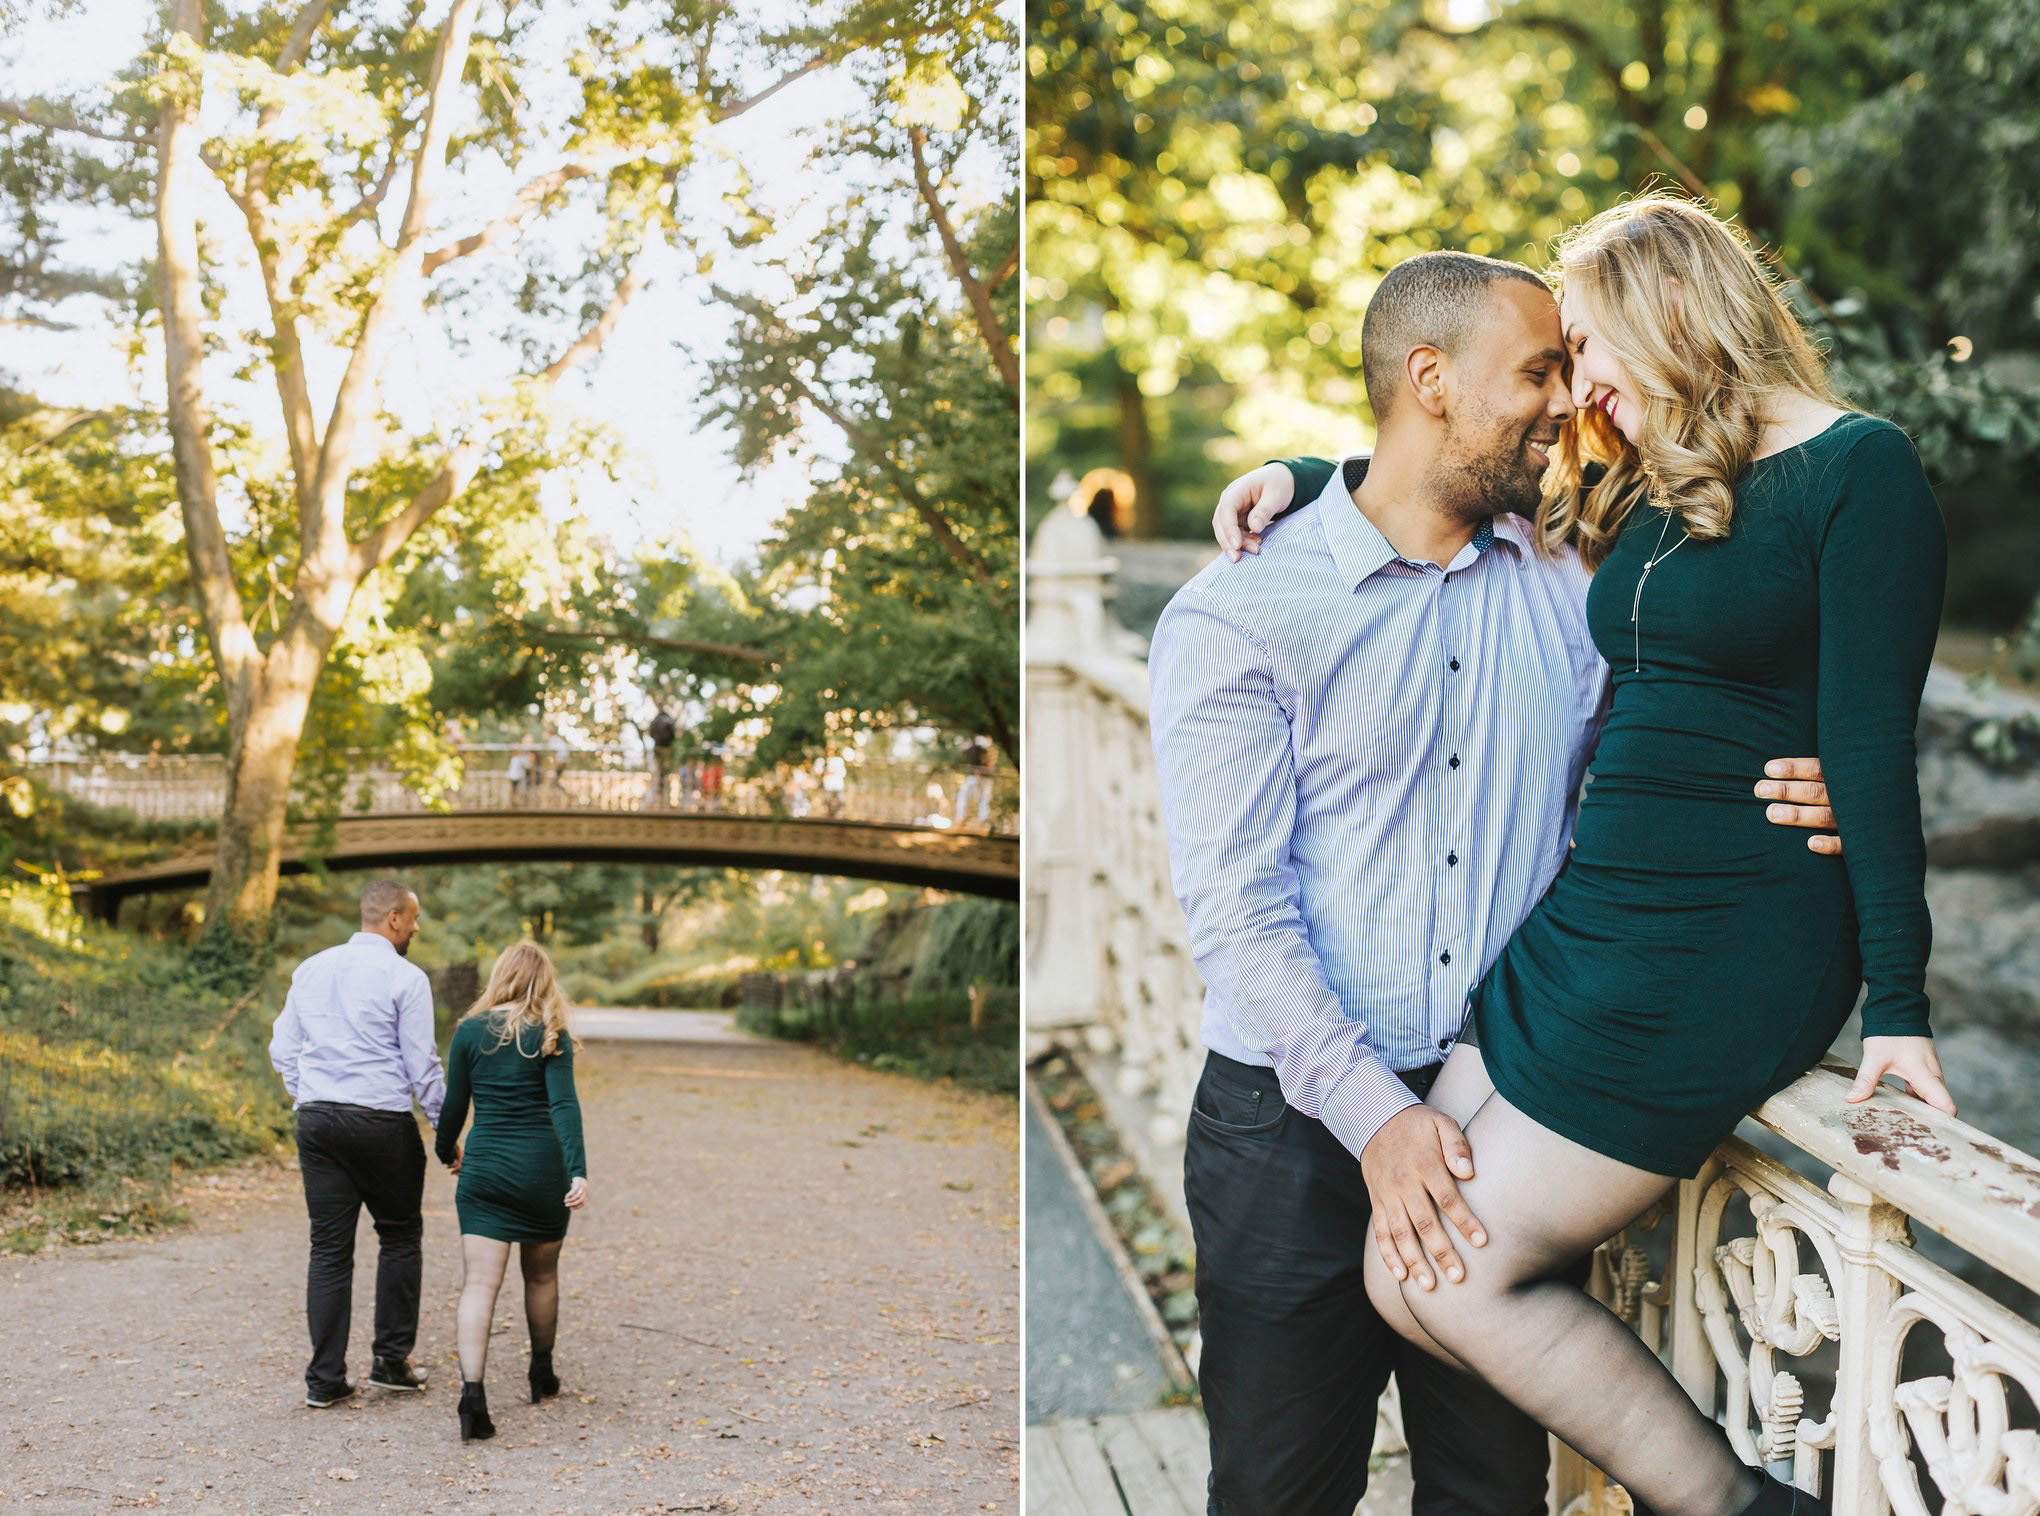 NYC_Engagement_Photographer-10.jpg